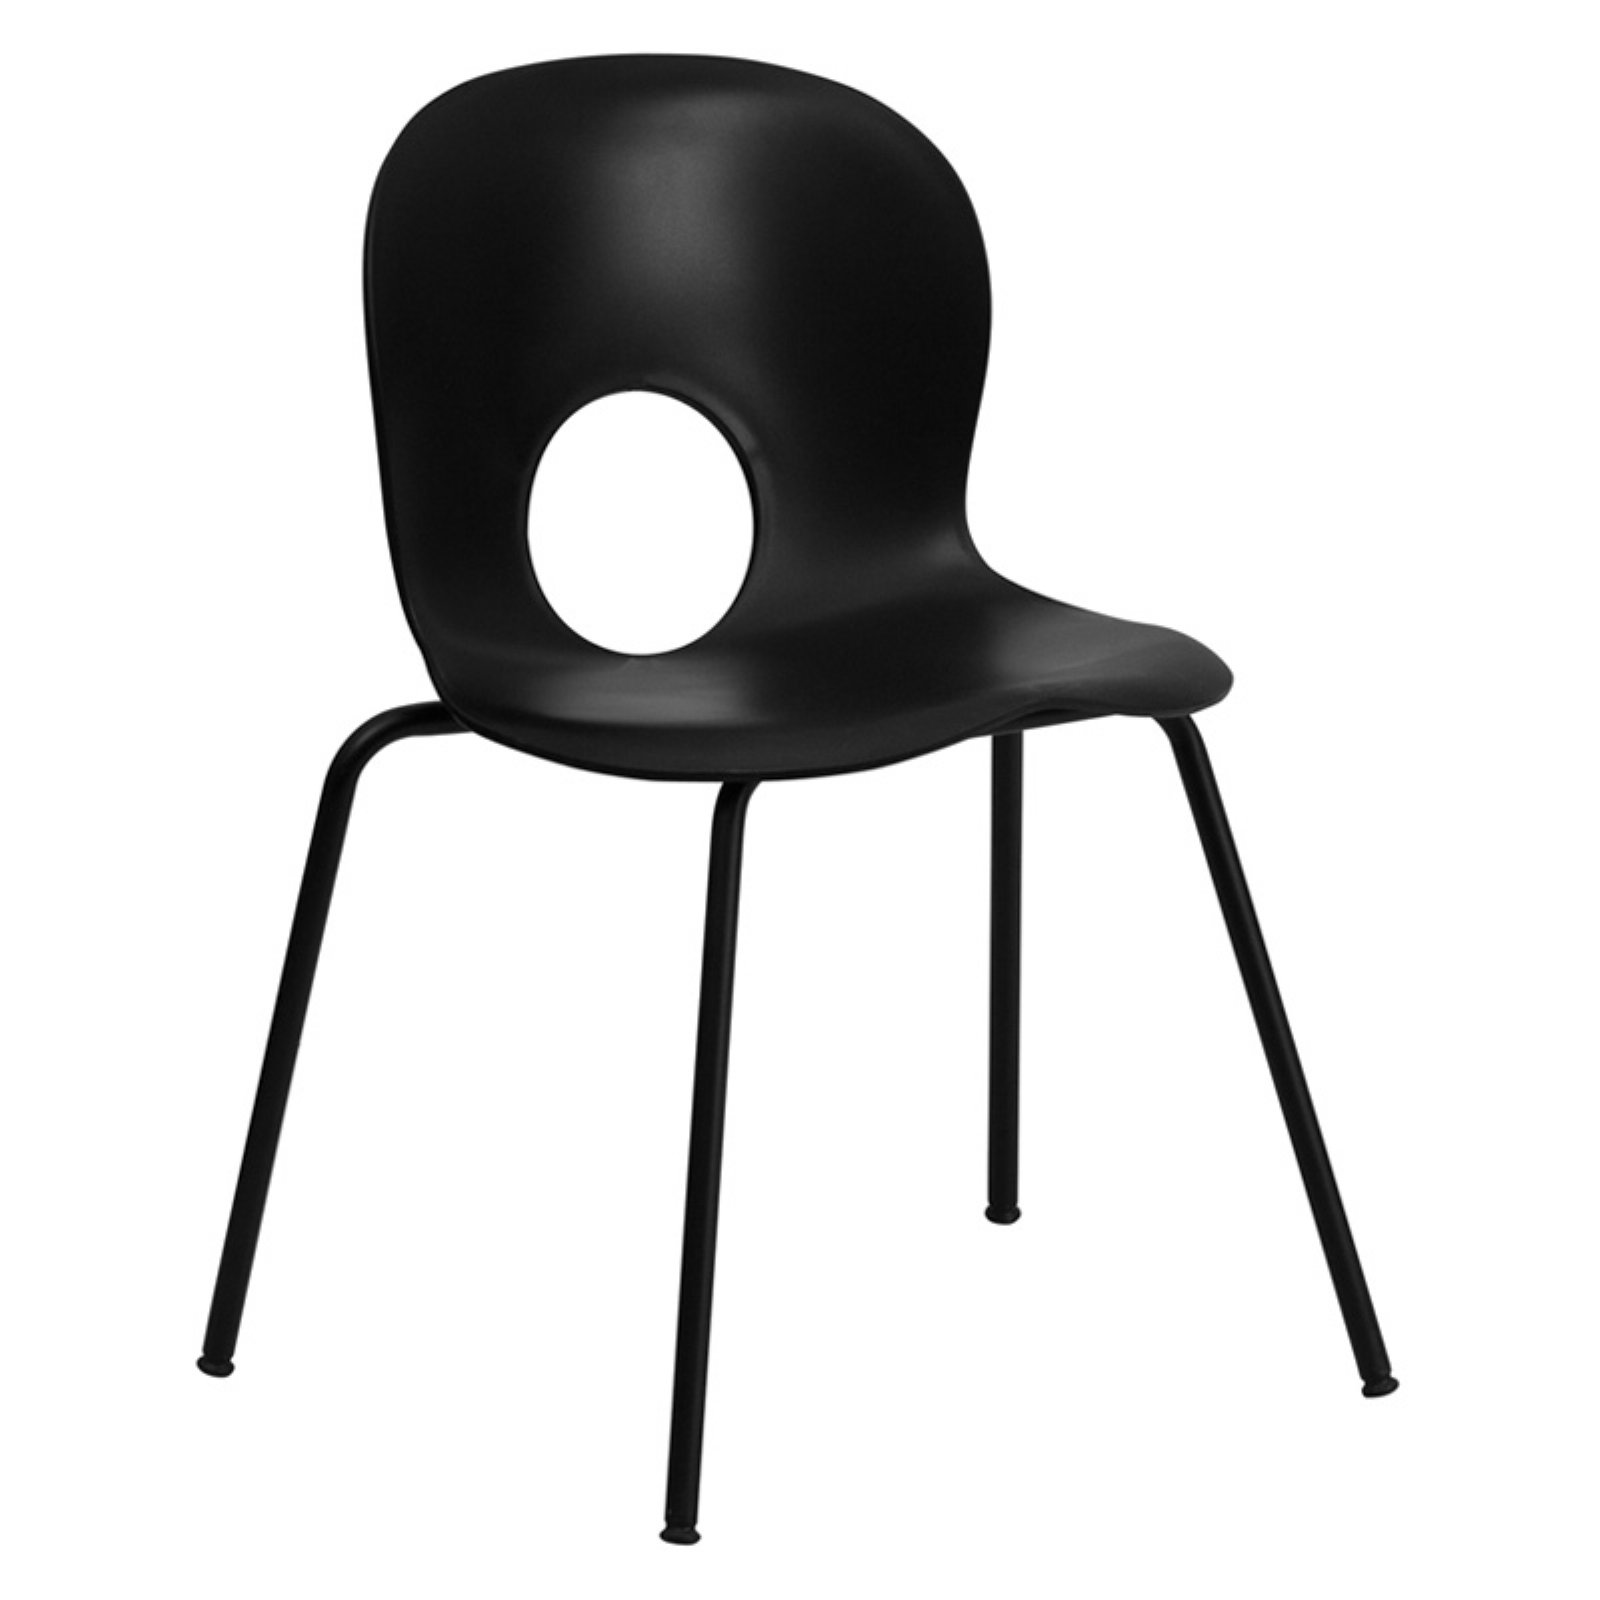 Flash Furniture HERCULES Series 770 lb Capacity Designer Plastic Stack Chair with Black Frame, Multiple Colors